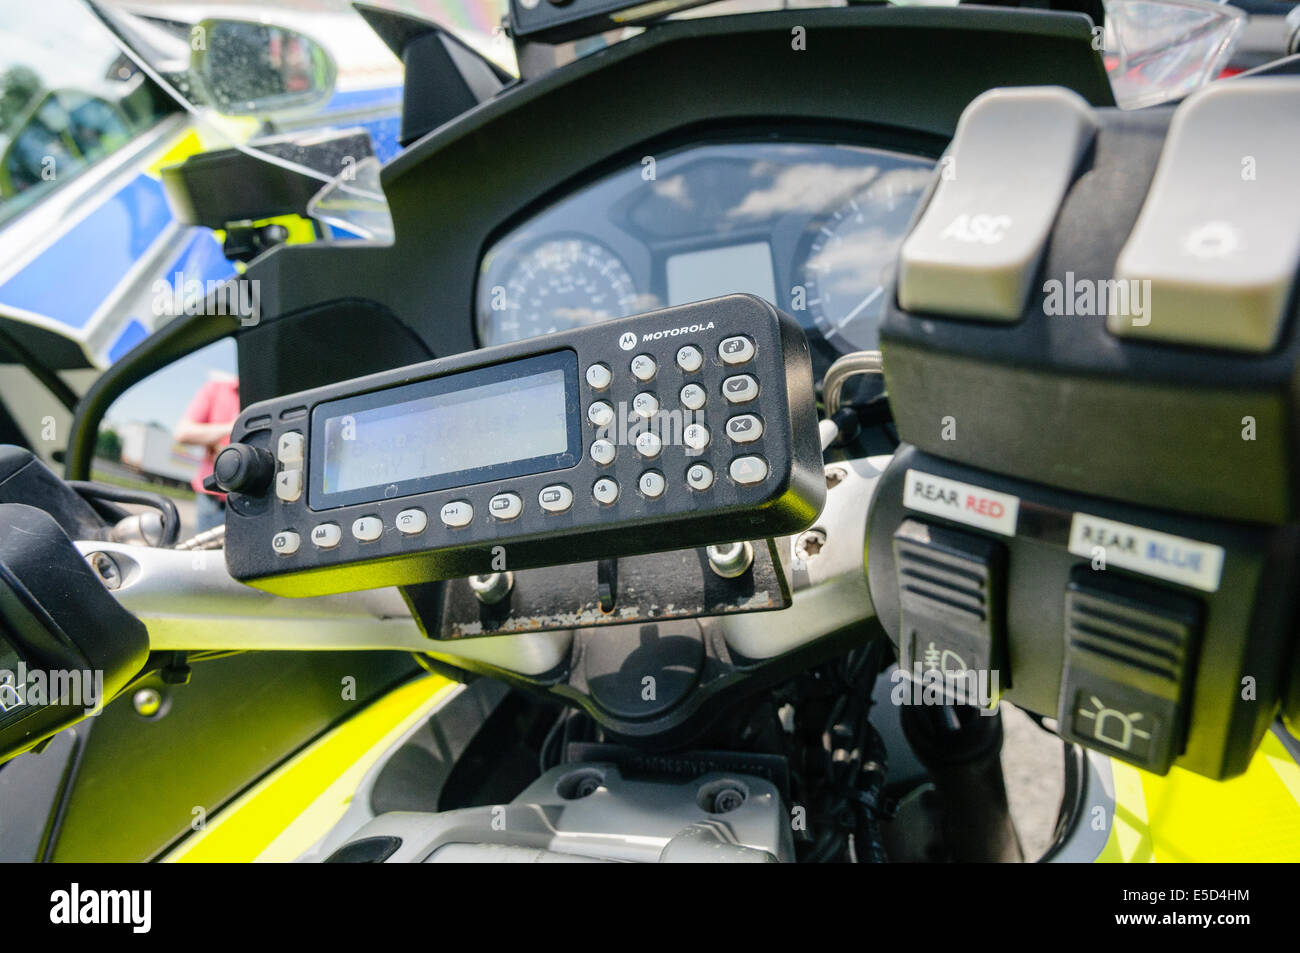 Motorola secure radio on a police motorcycle - Stock Image